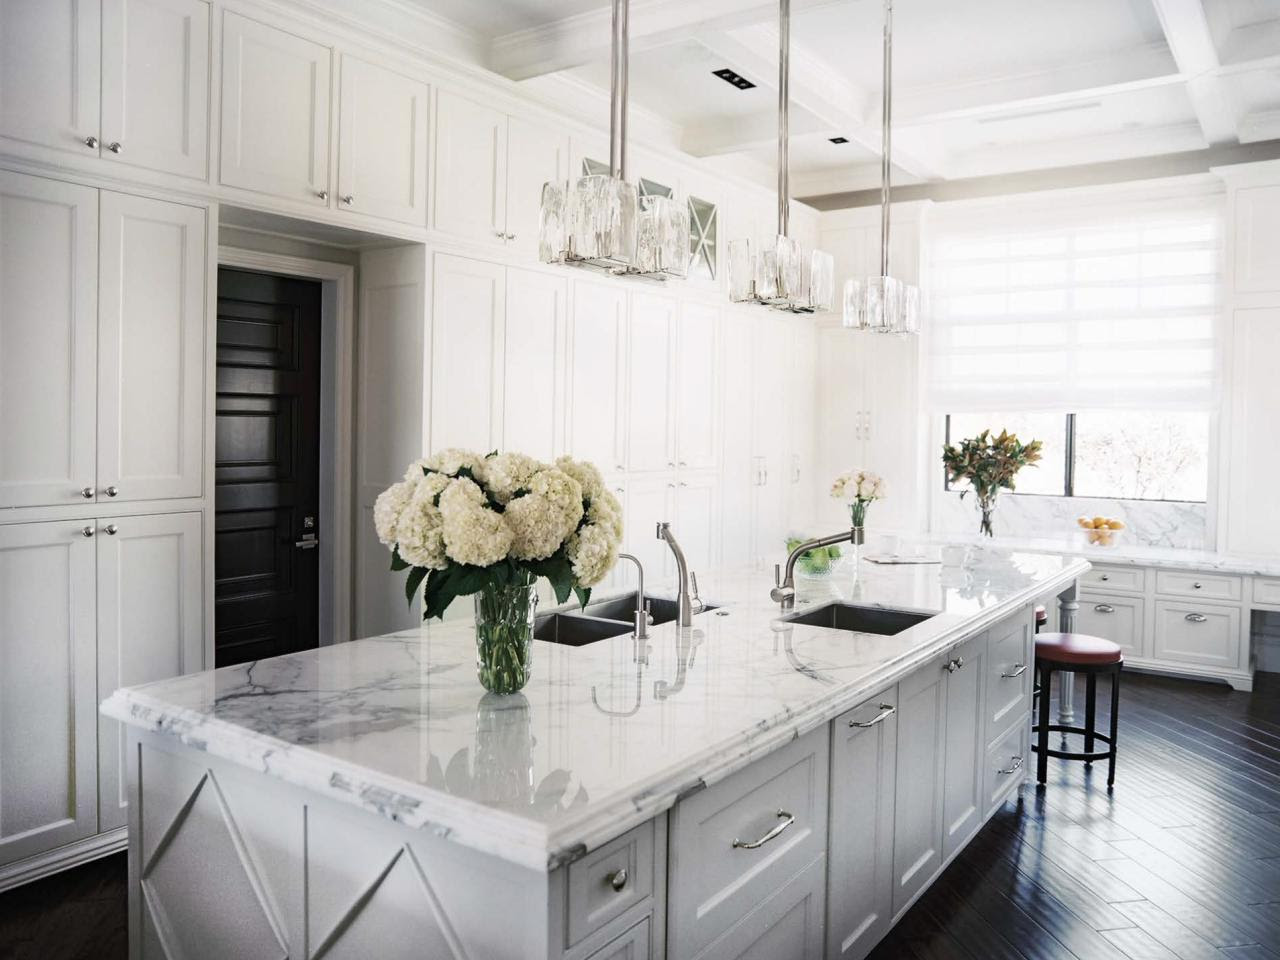 Kitchen Remodels With White Cabinets Pictures | Roy Home ...